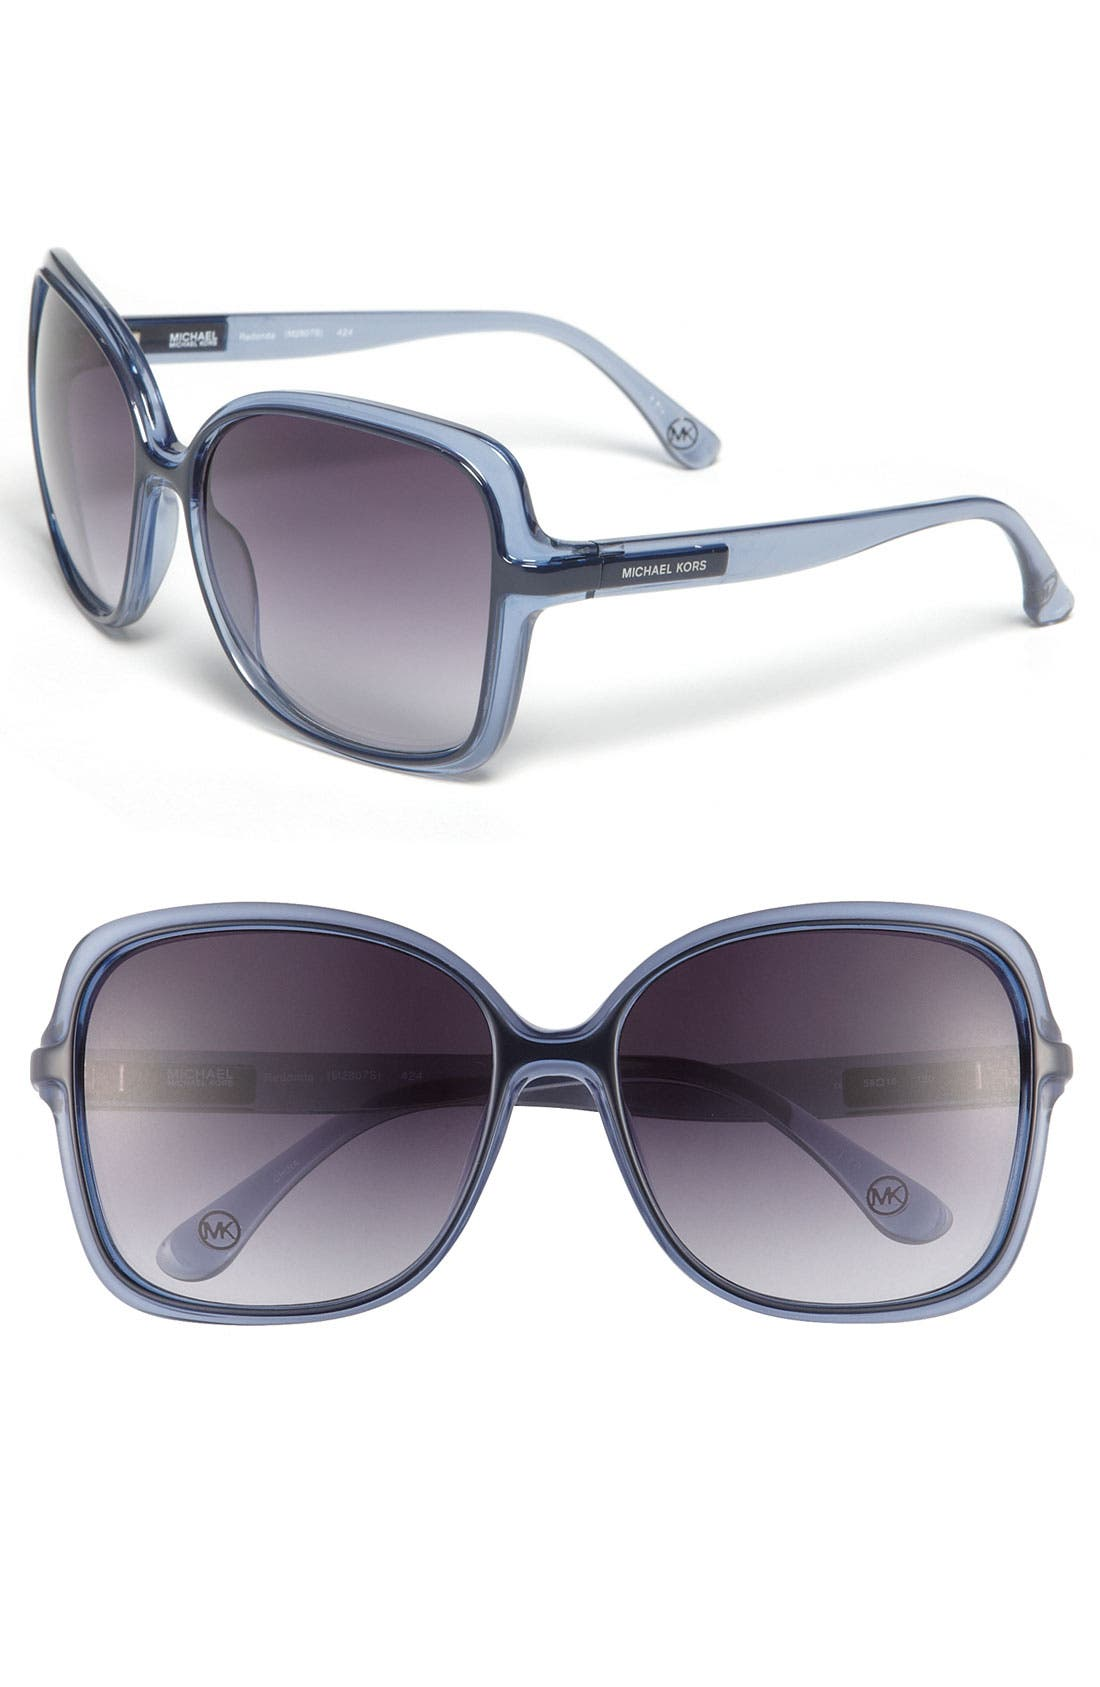 Main Image - MICHAEL Michael Kors 'Redonda' 59mm Square Sunglasses